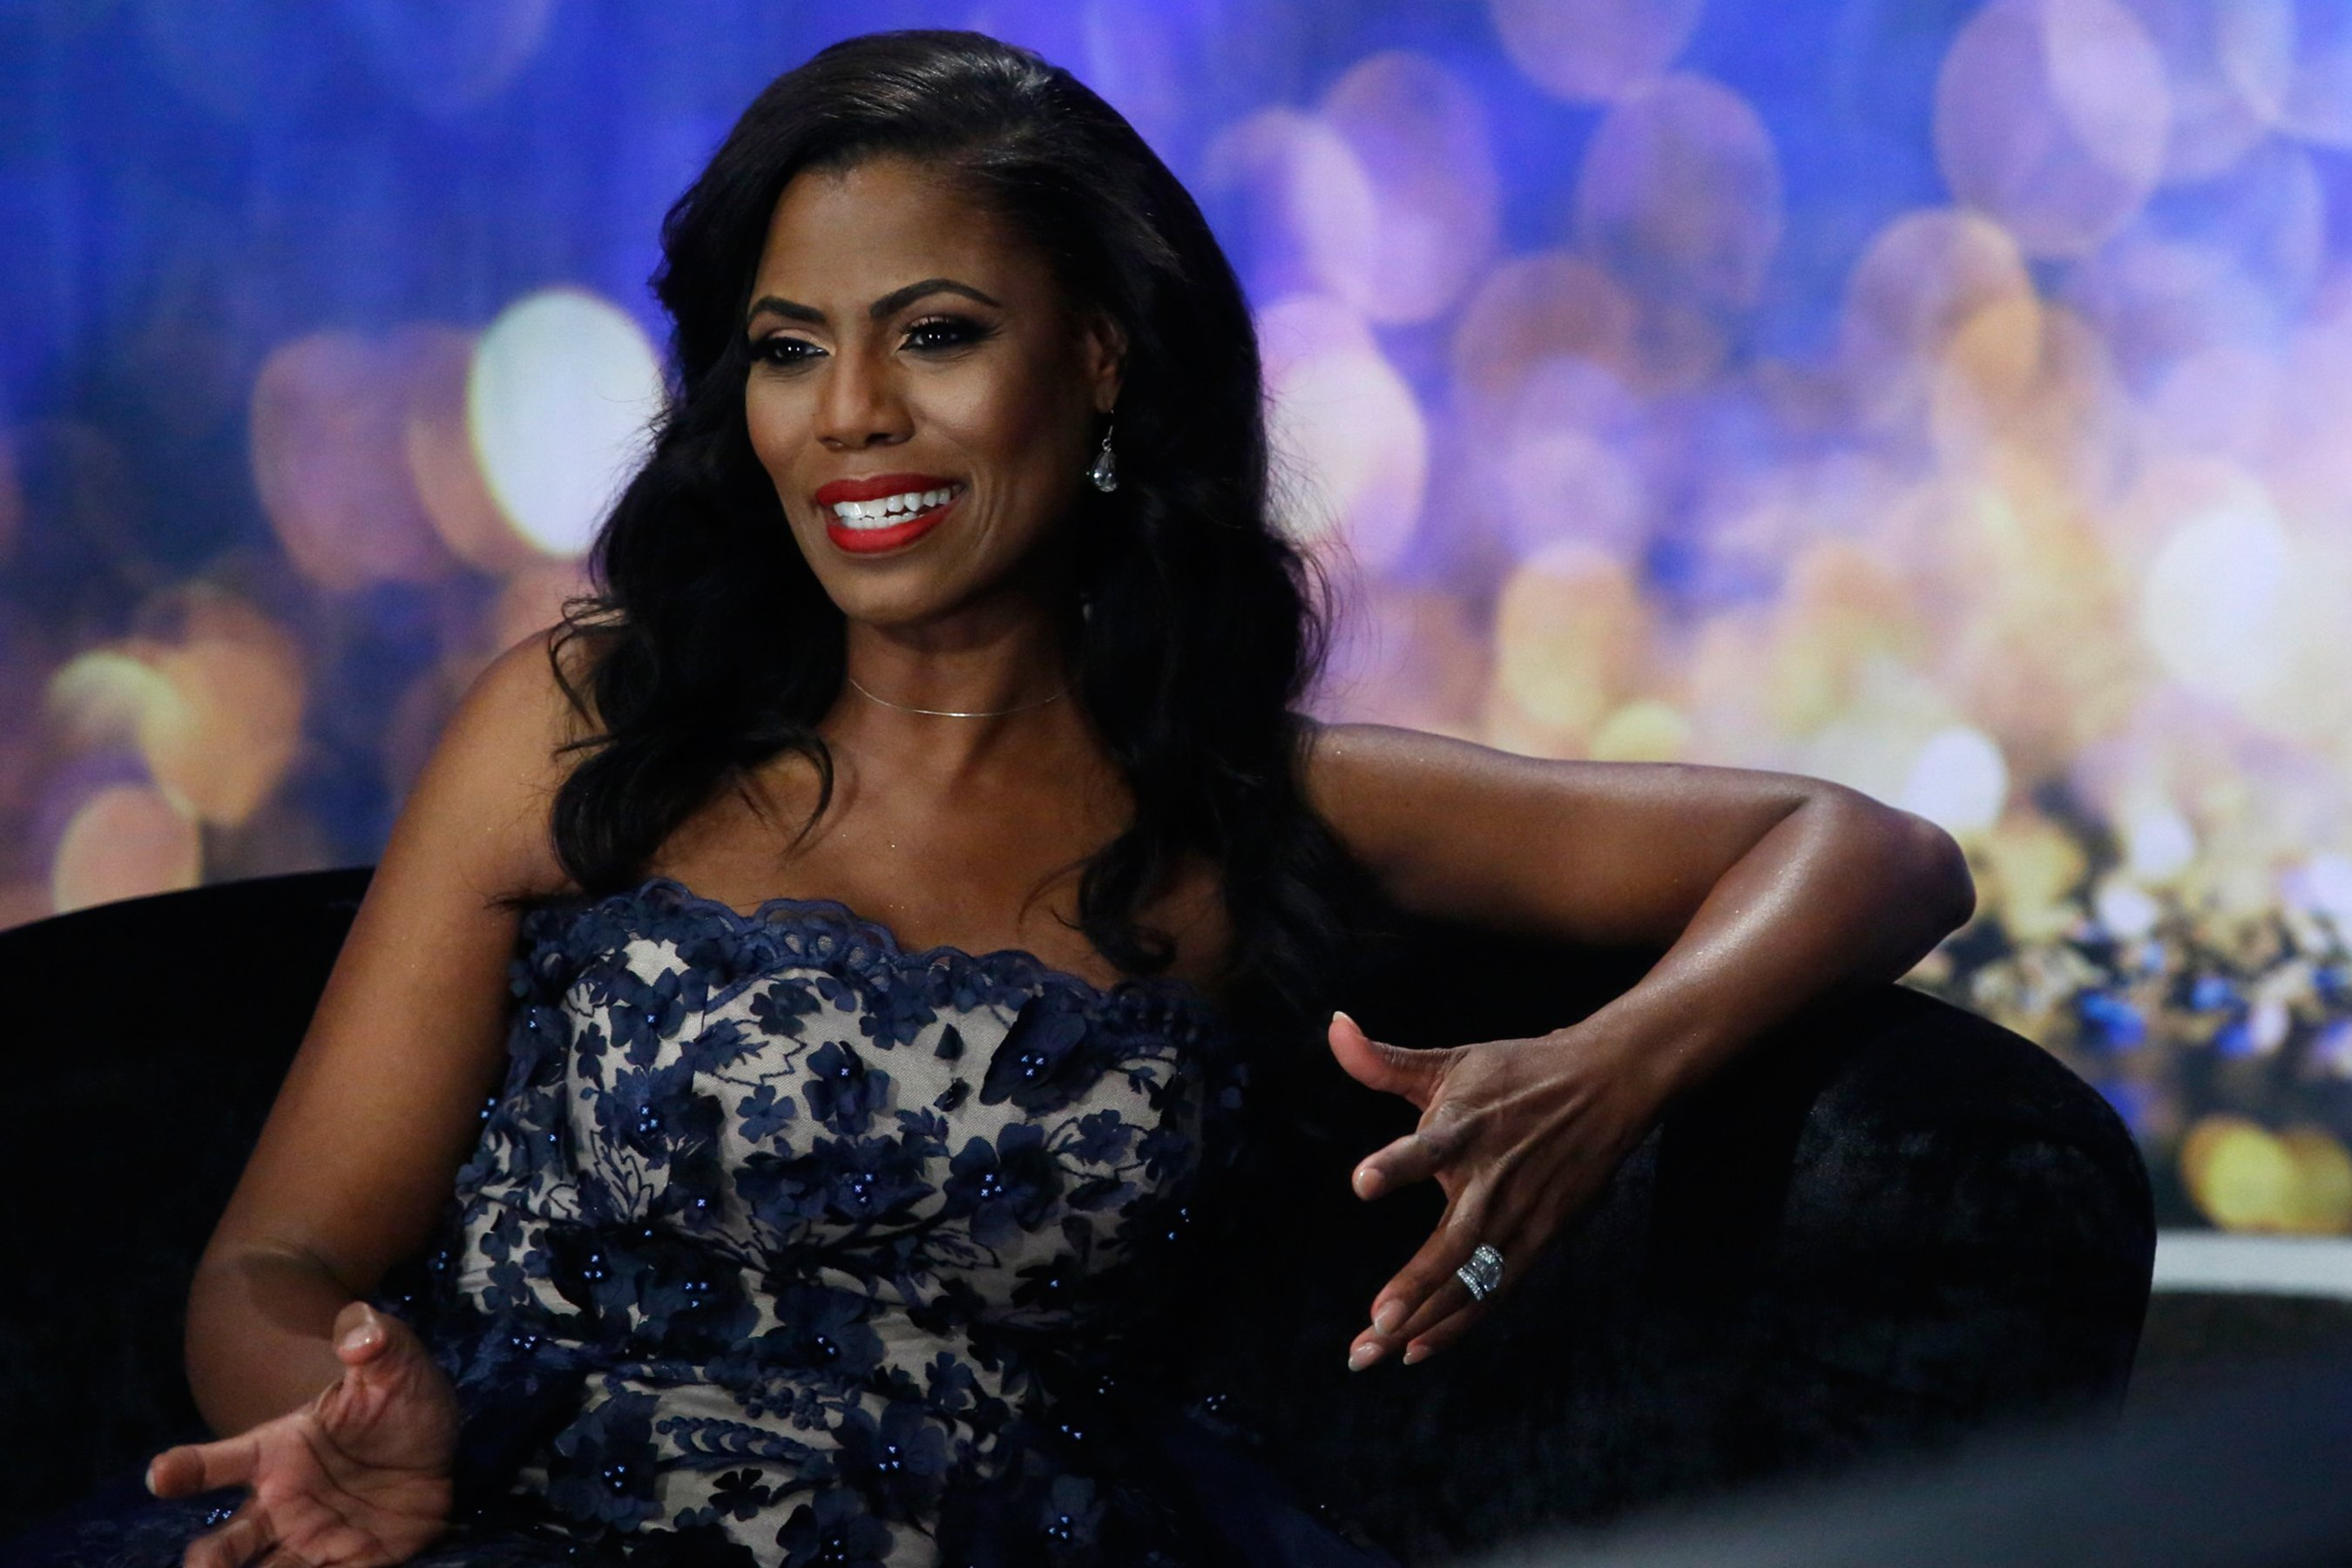 Celebrity Big Brother: Omarosa out of house due to injury